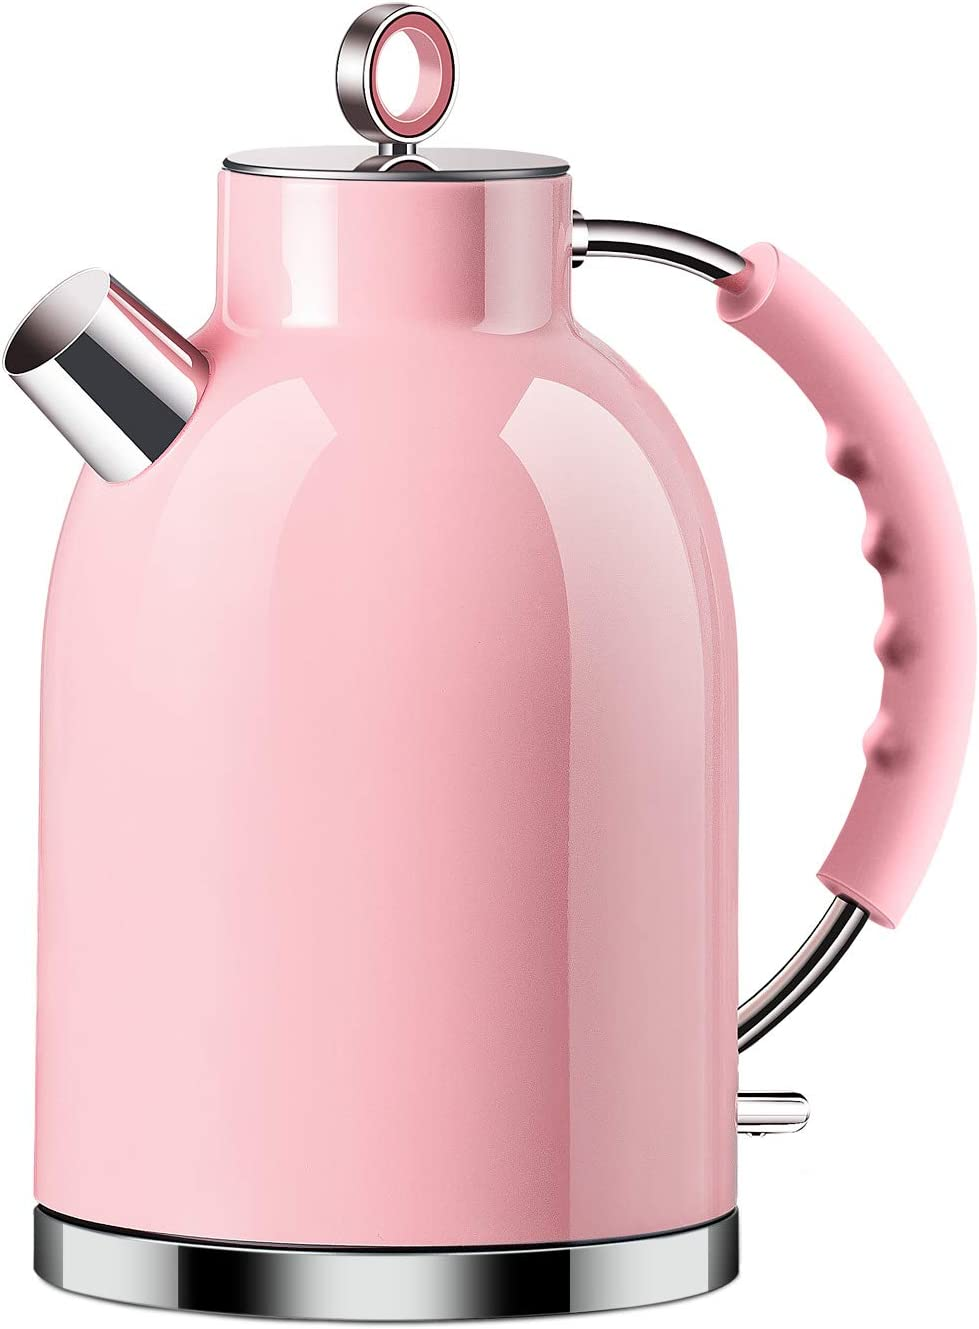 Electric Kettle, ASCOT Stainless Steel Electric Tea Kettle, 1.7QT, 1500W, BPA-Free, Cordless, Automatic Shutoff, Fast Boiling Water Heater - Pink